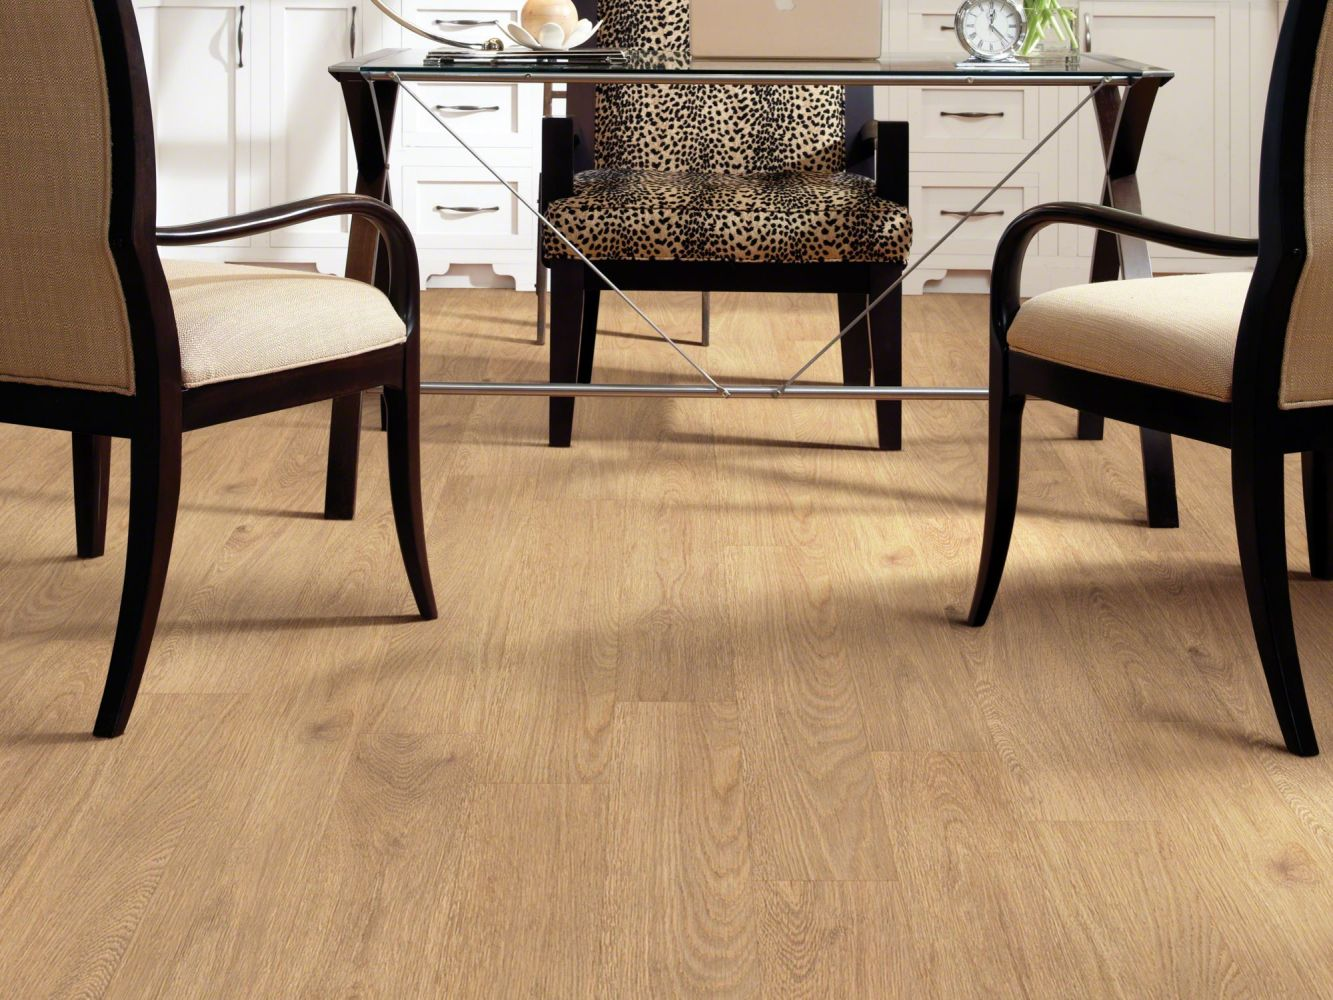 Shaw Floors 5th And Main Thoroughly Mo Elite Technology 00247_5M207